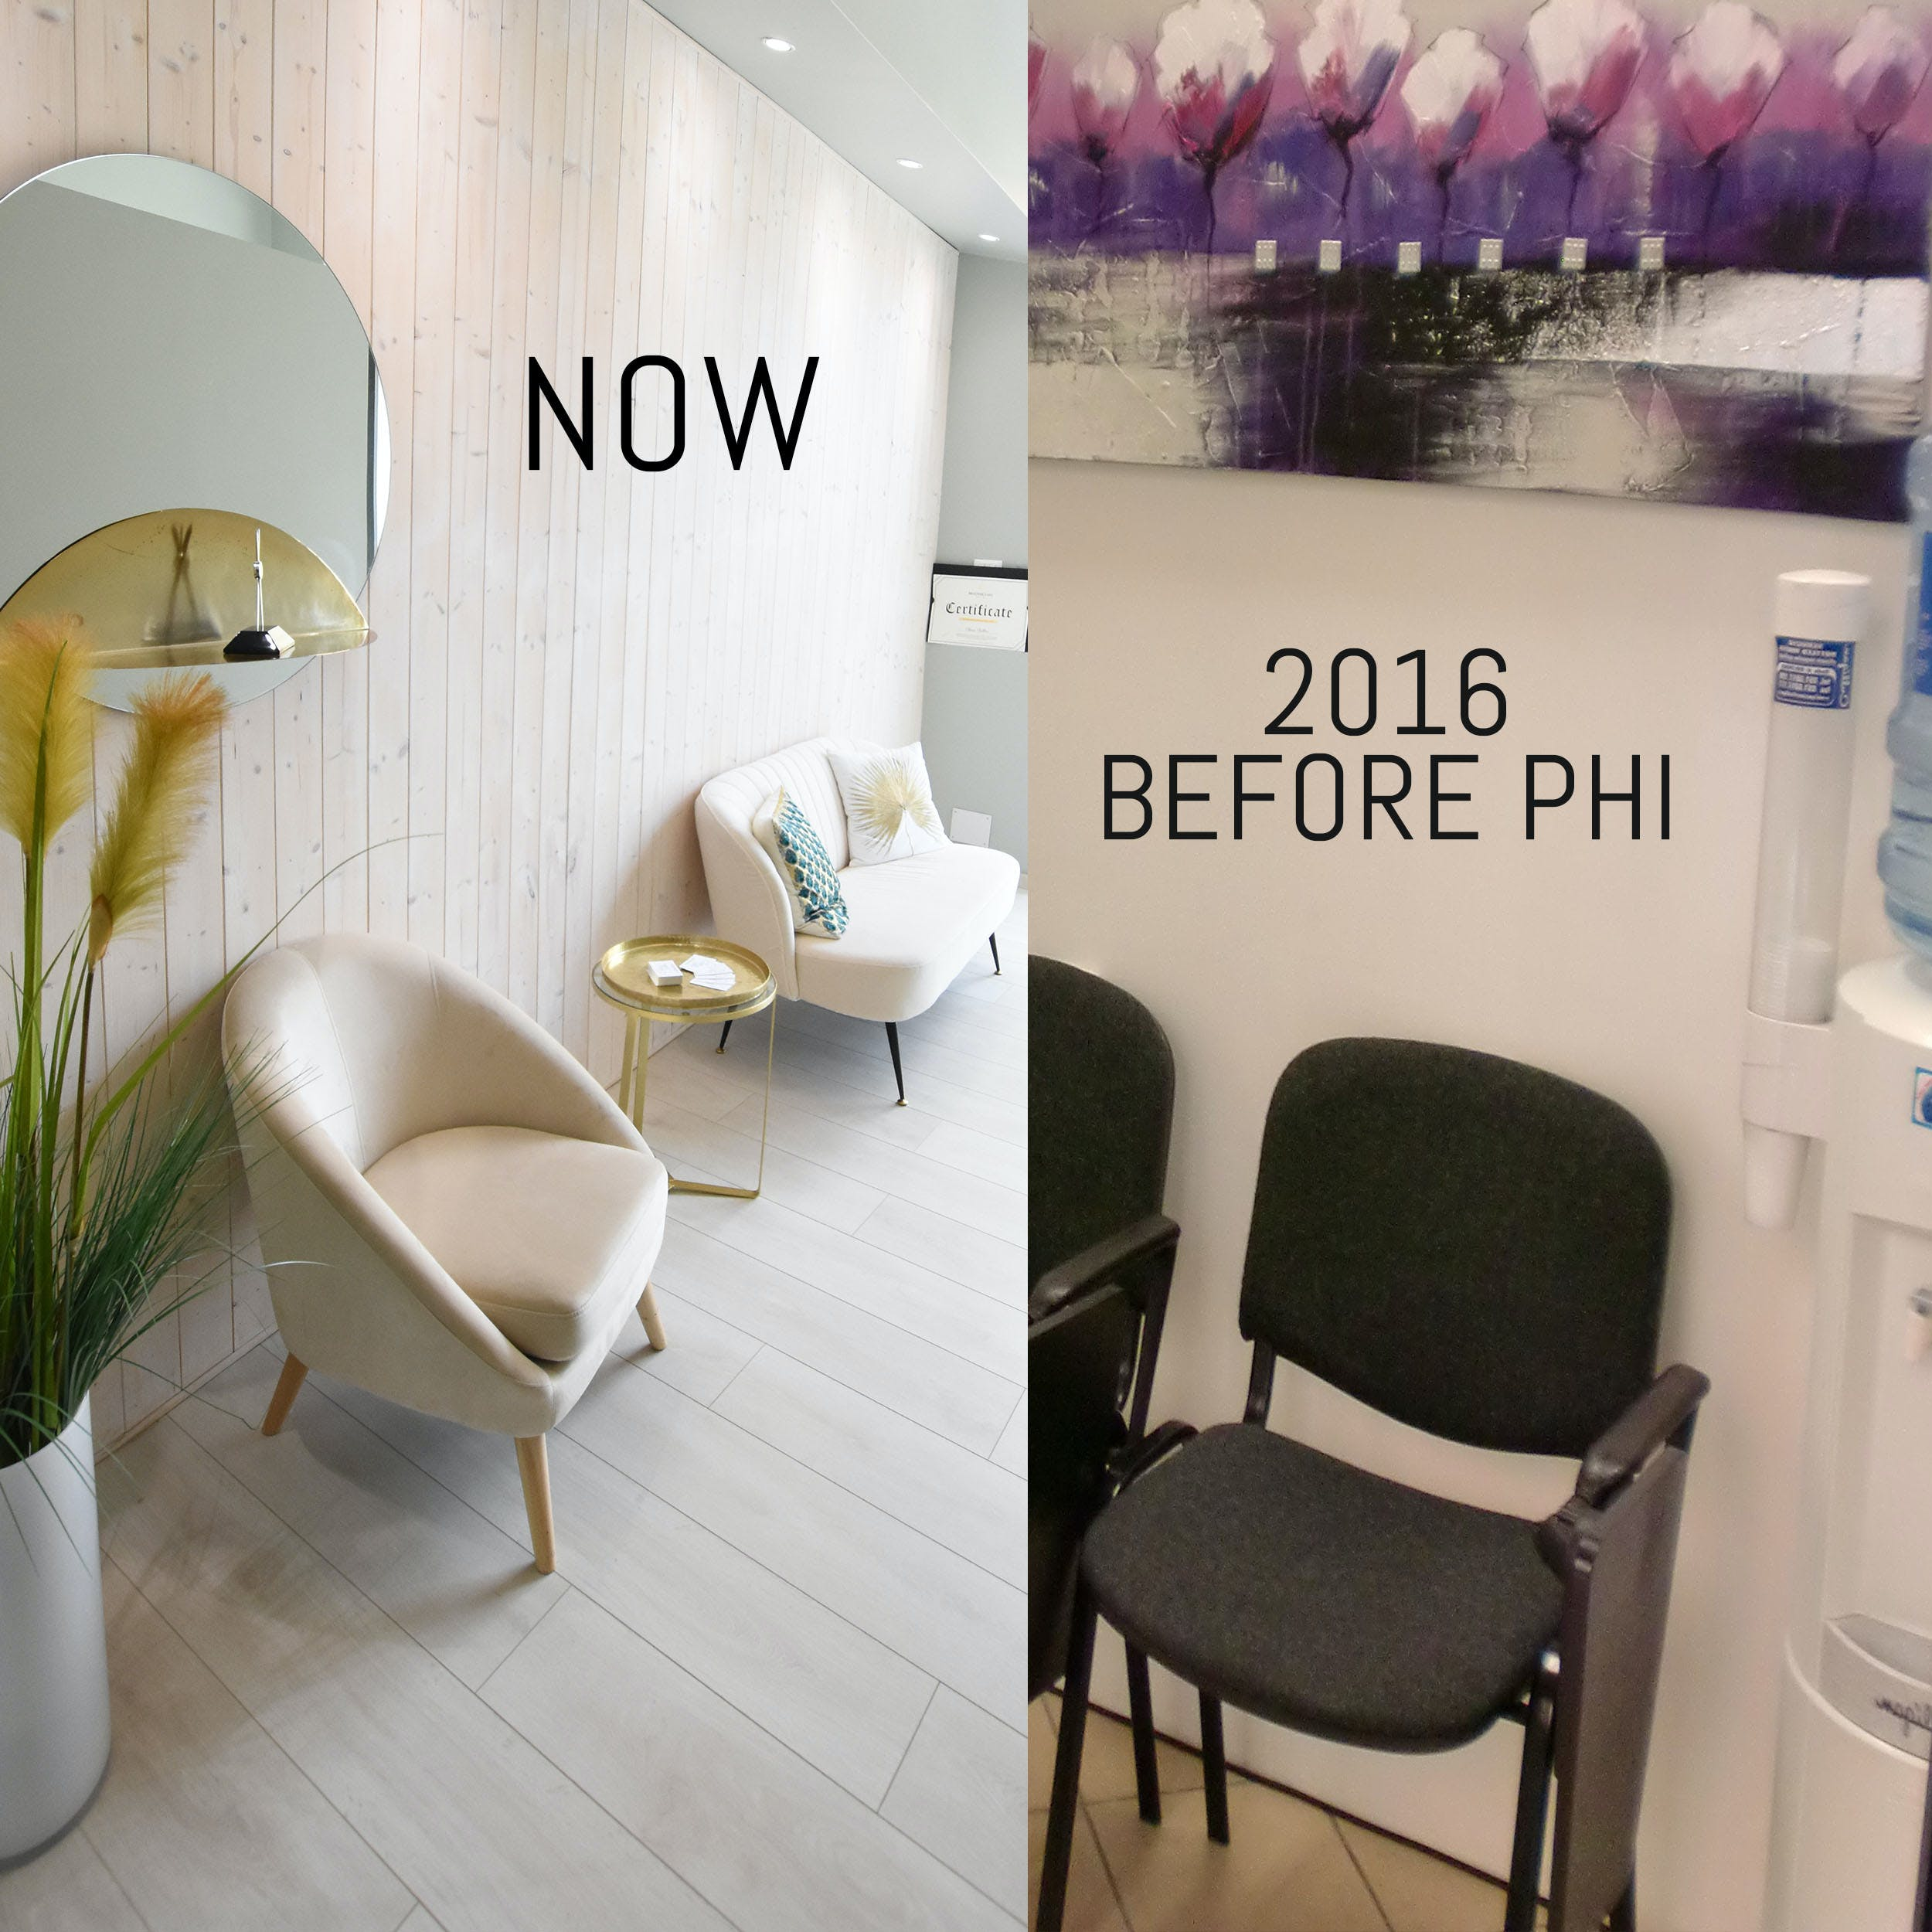 Chiara's salon today and before she became a part of Phi Academy